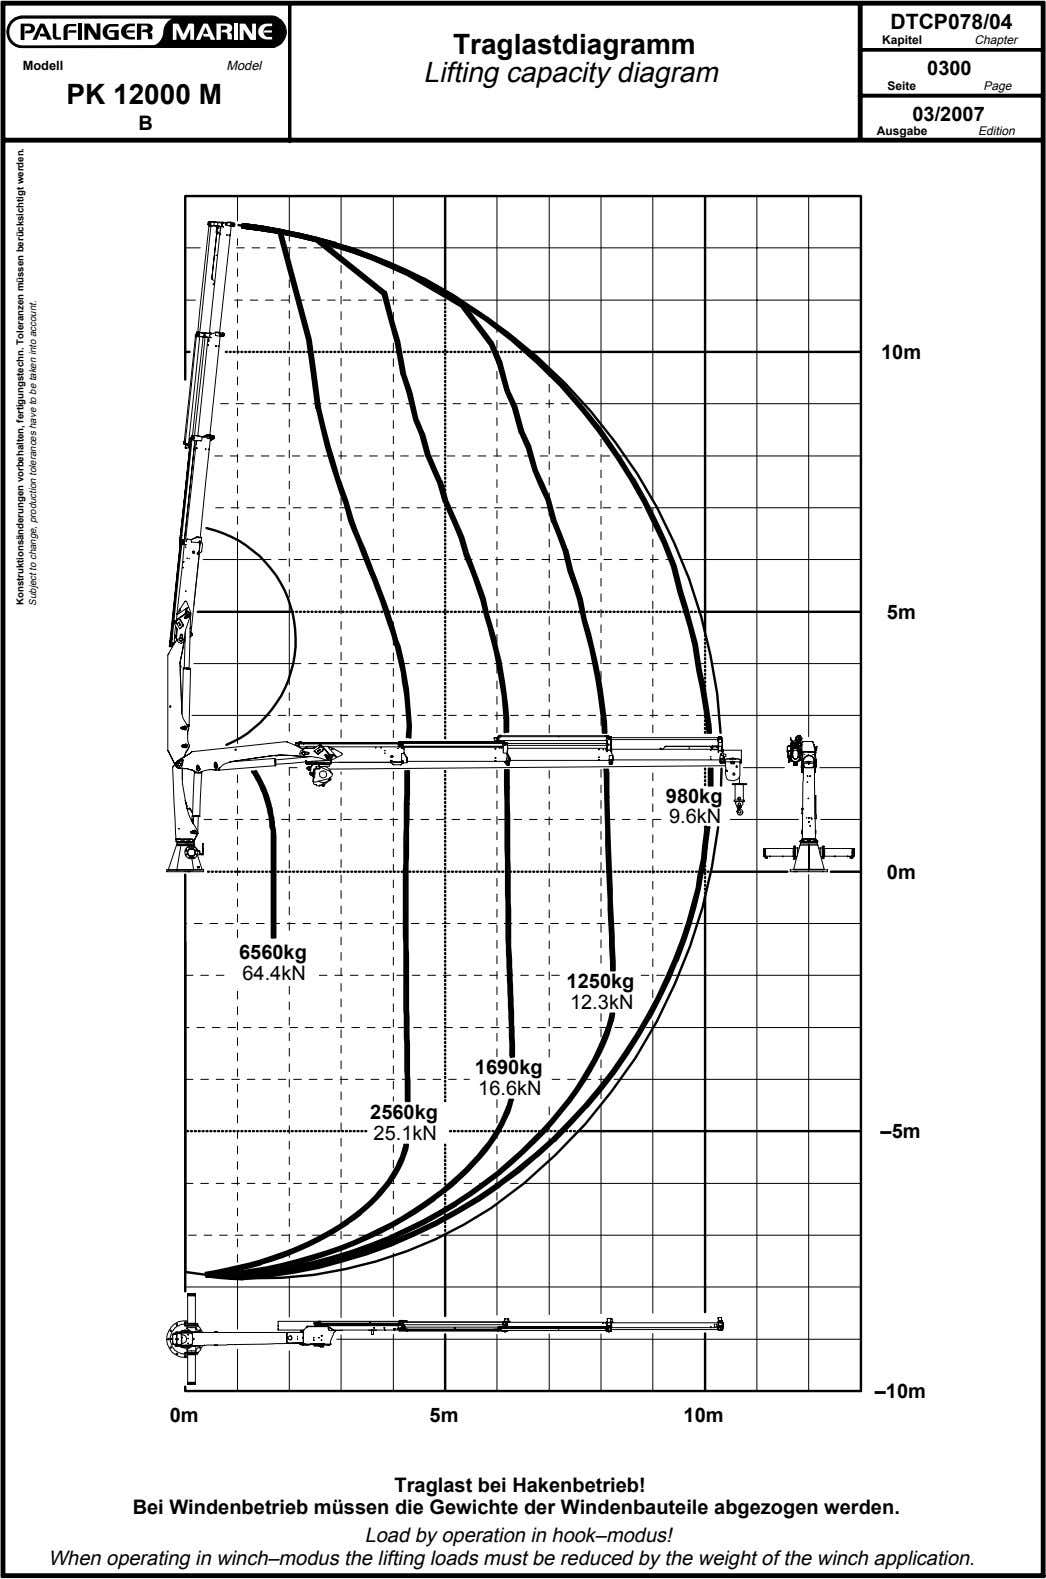 DTCP078/04 Traglastdiagramm Kapitel Chapter Modell Model Lifting capacity diagram 0300 Seite Page PK 12000 M